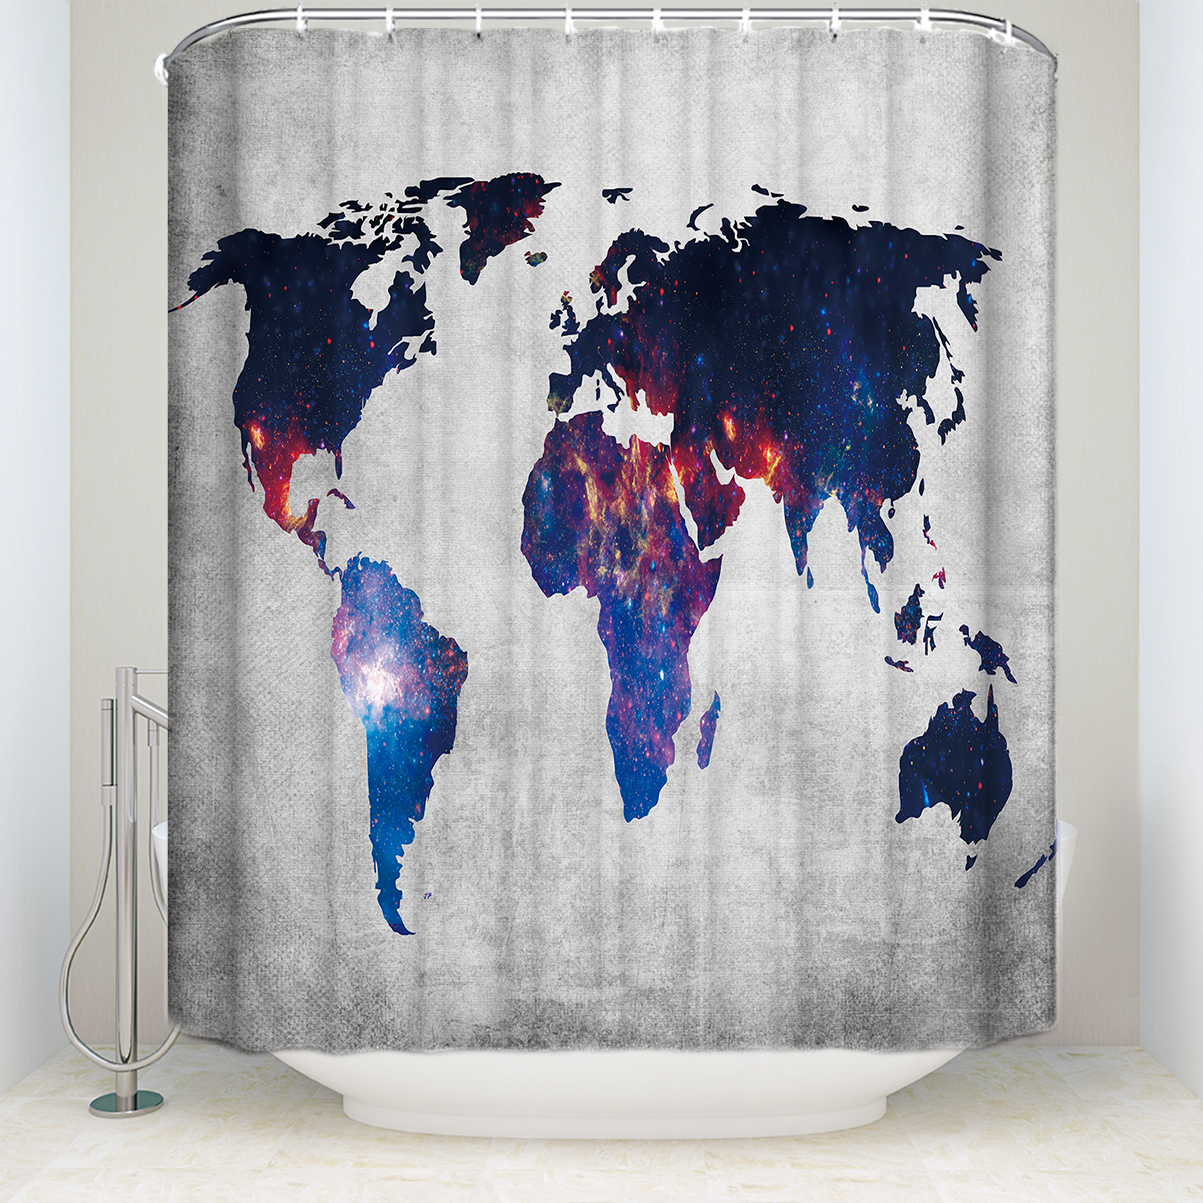 Cloth World Map Shower Curtain - Year of Clean Water